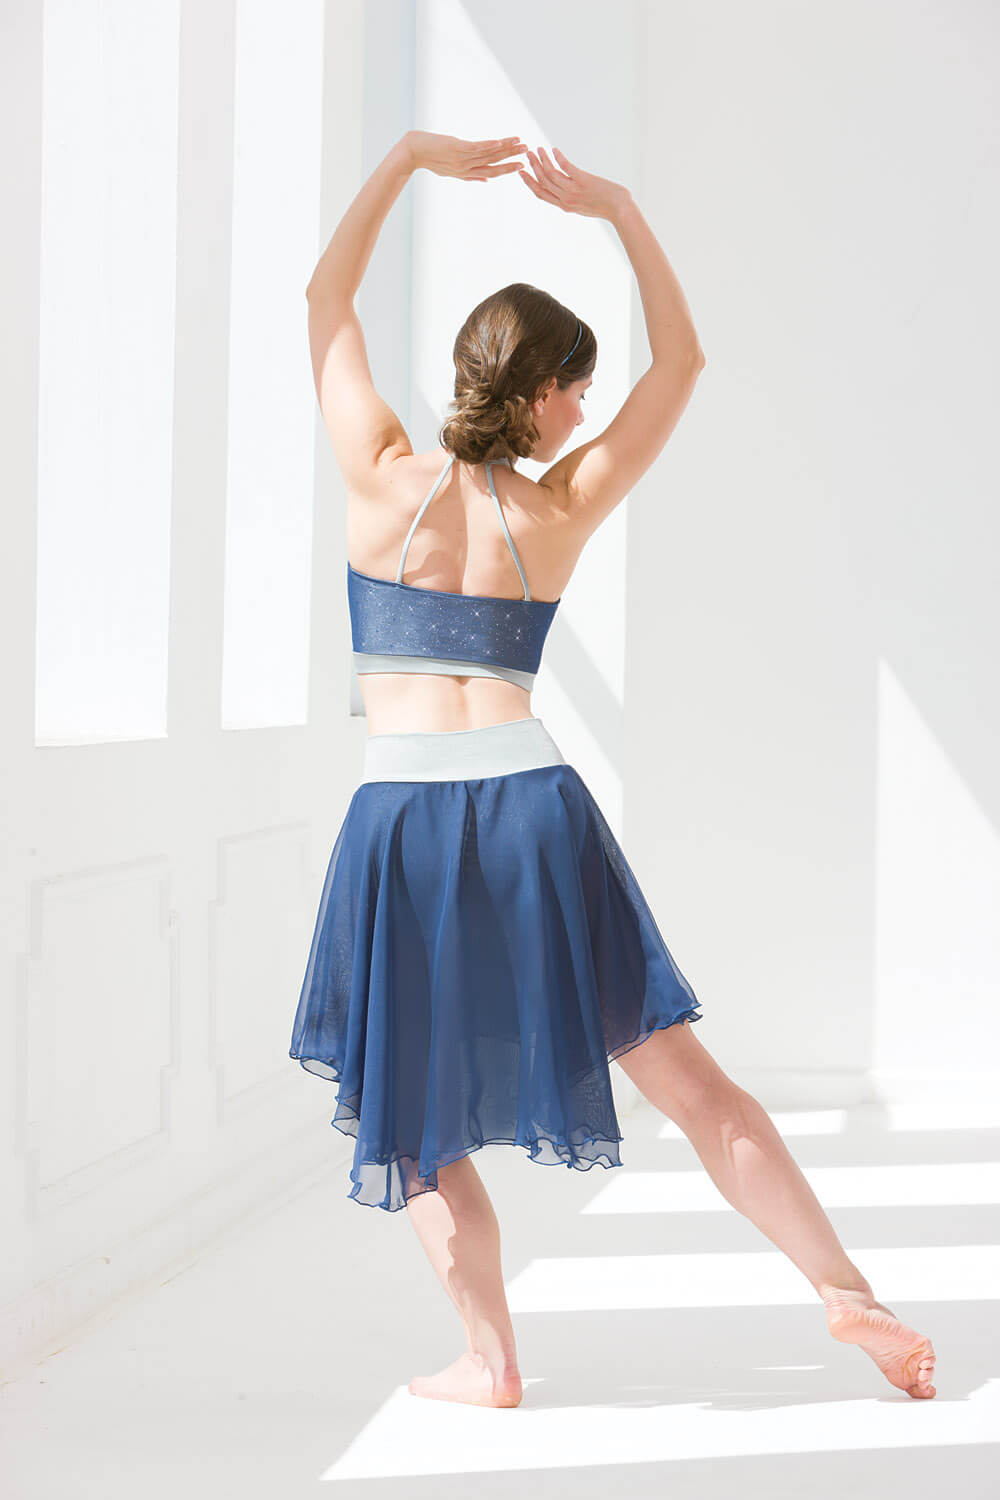 Hairstyles For A Lyrical Dance : Skyfall dance costumes australia